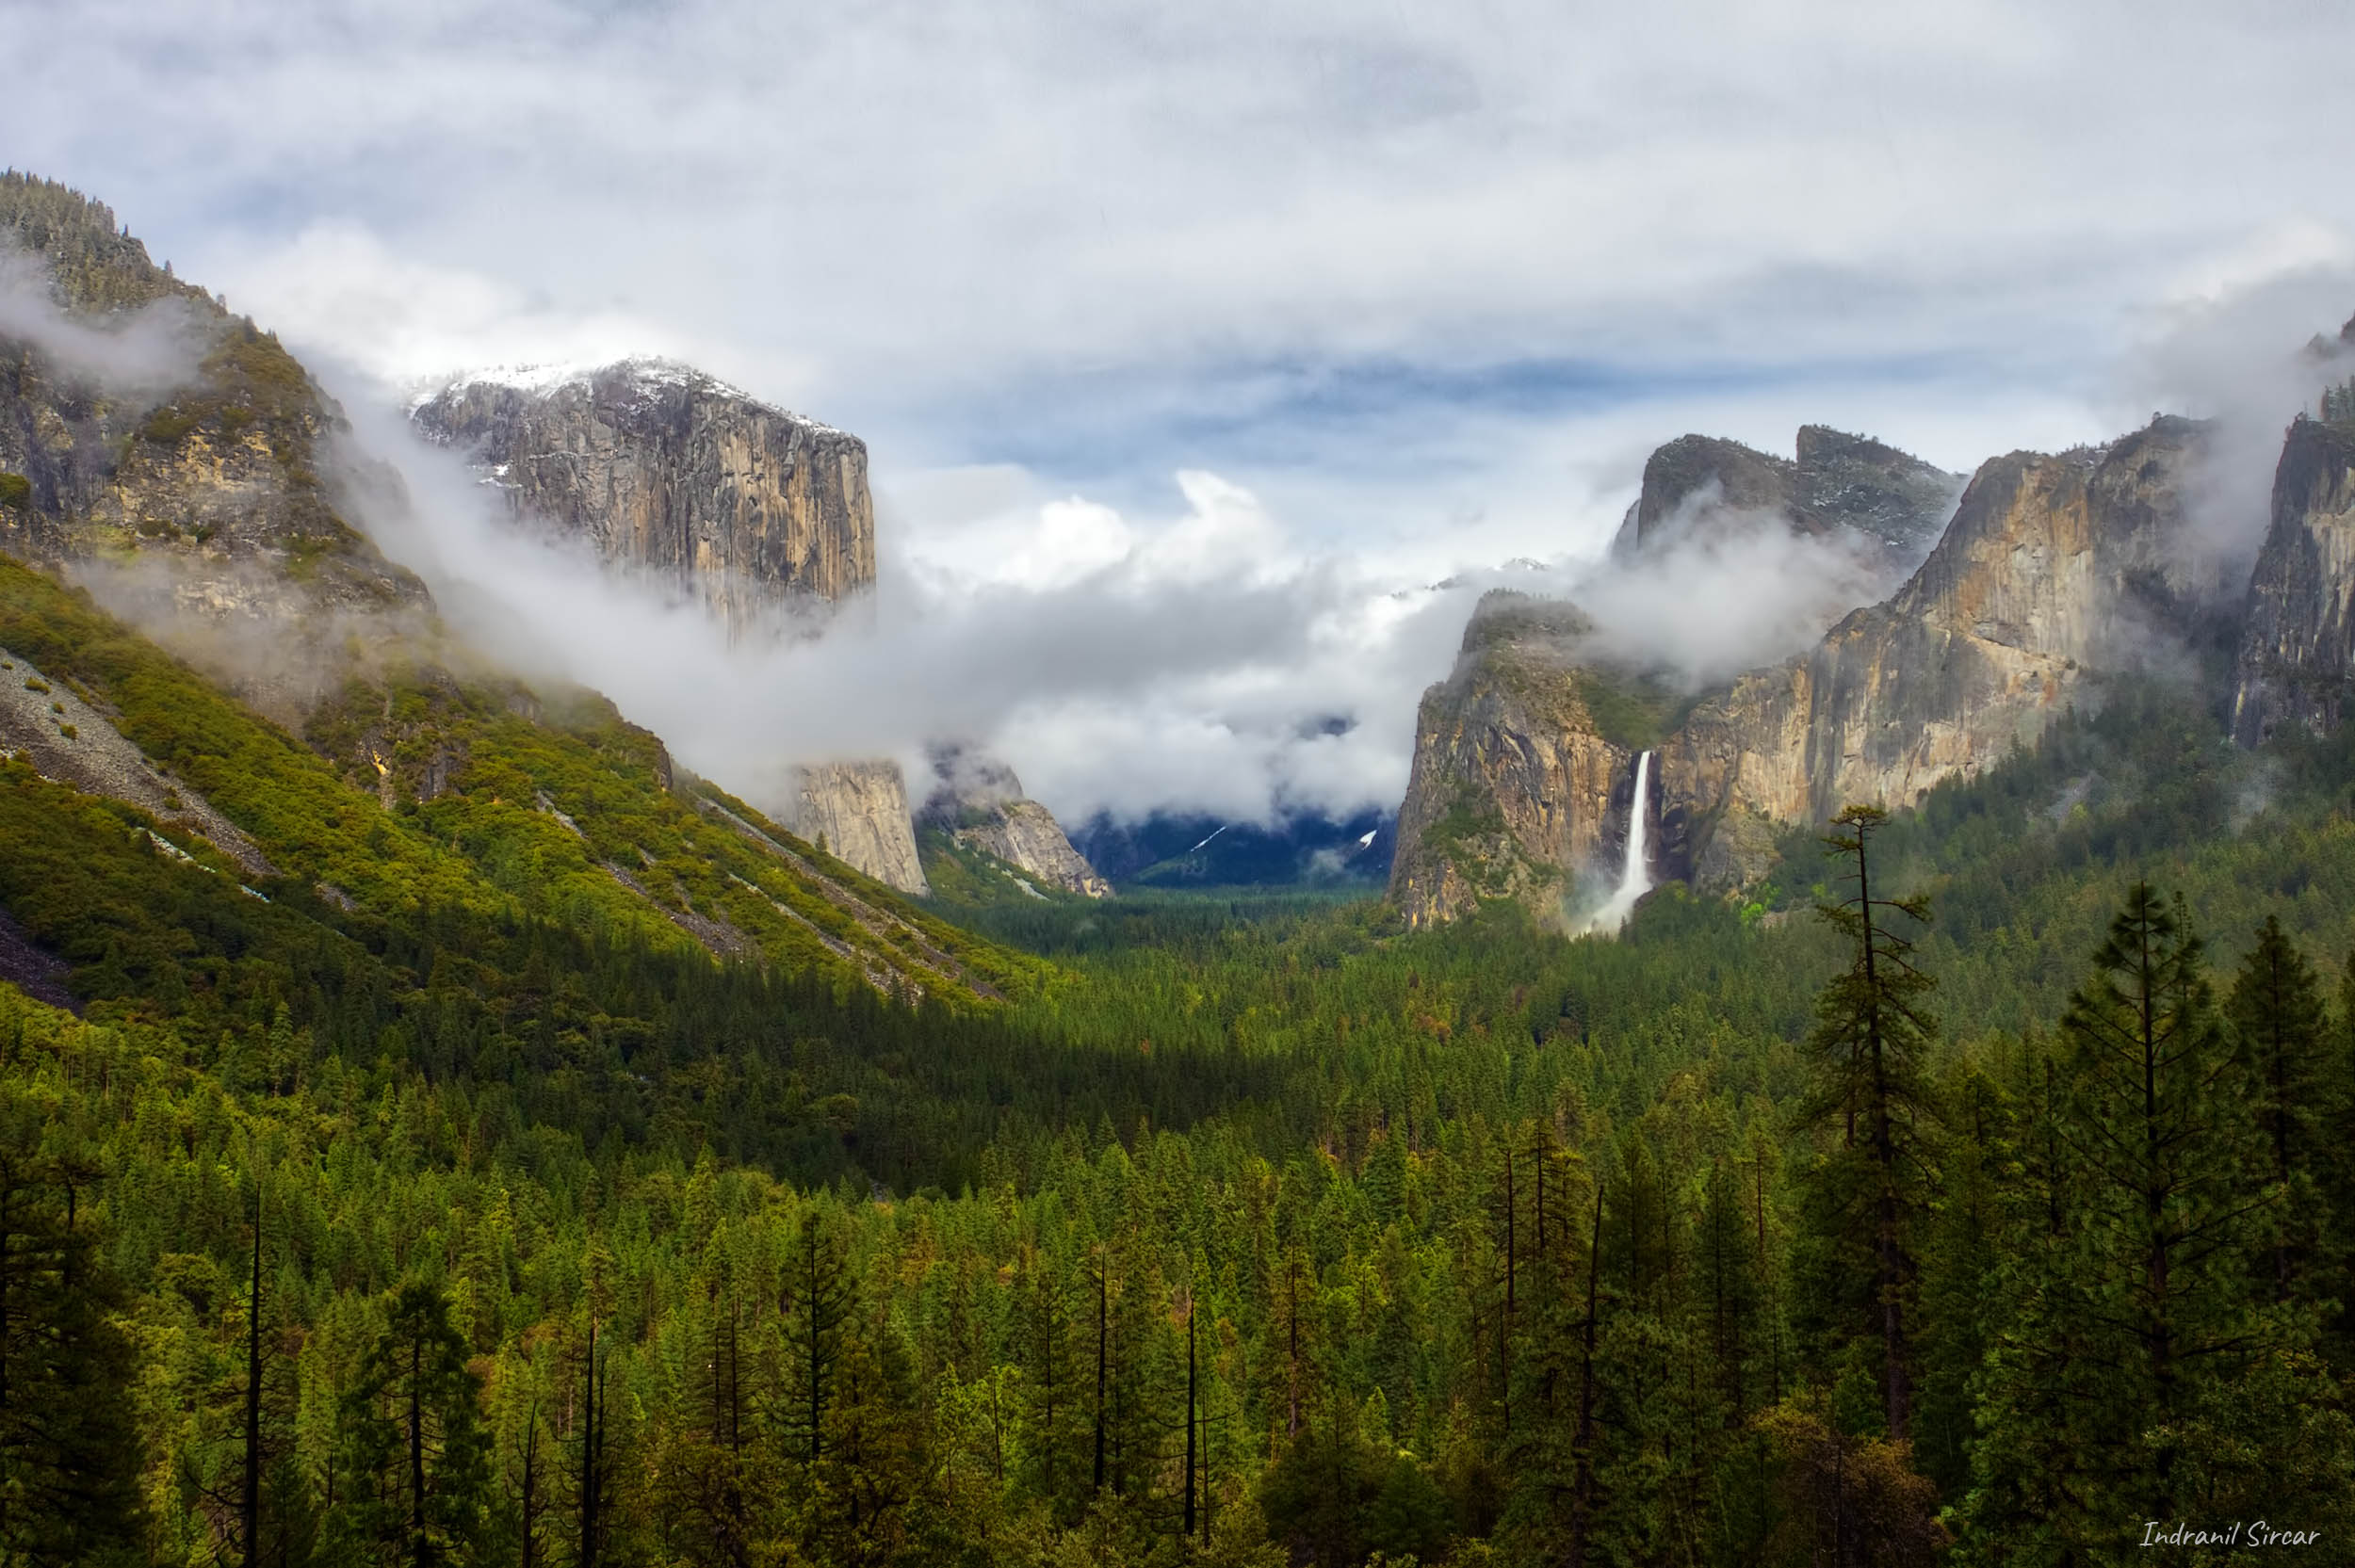 Valley View after a late spring storm, Yosemite National Park, CA